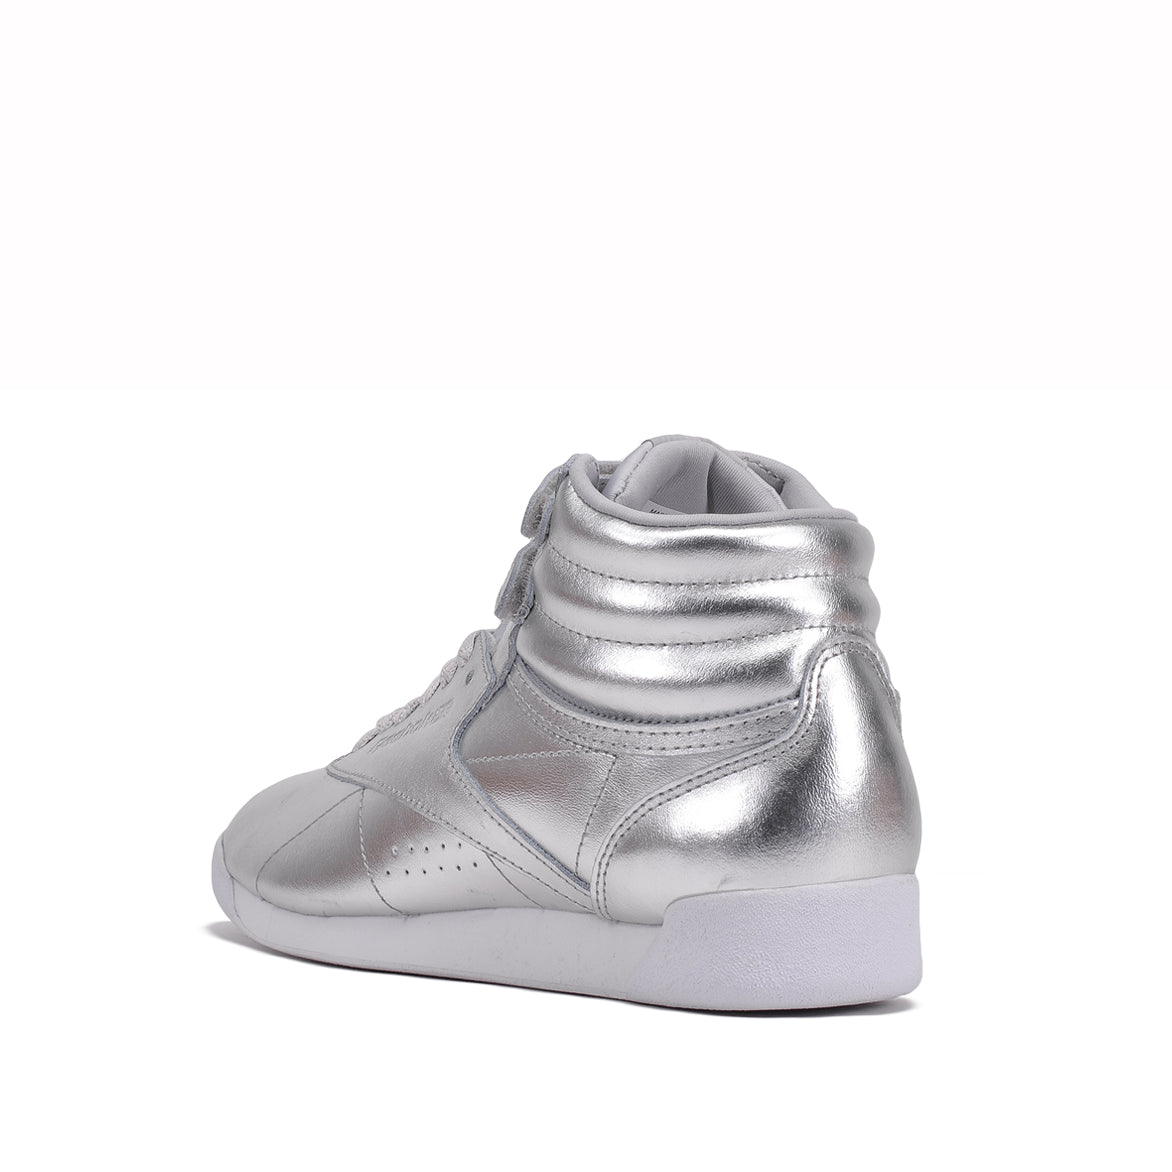 WMNS FREESTYLE HIGH METALLIC - SILVER